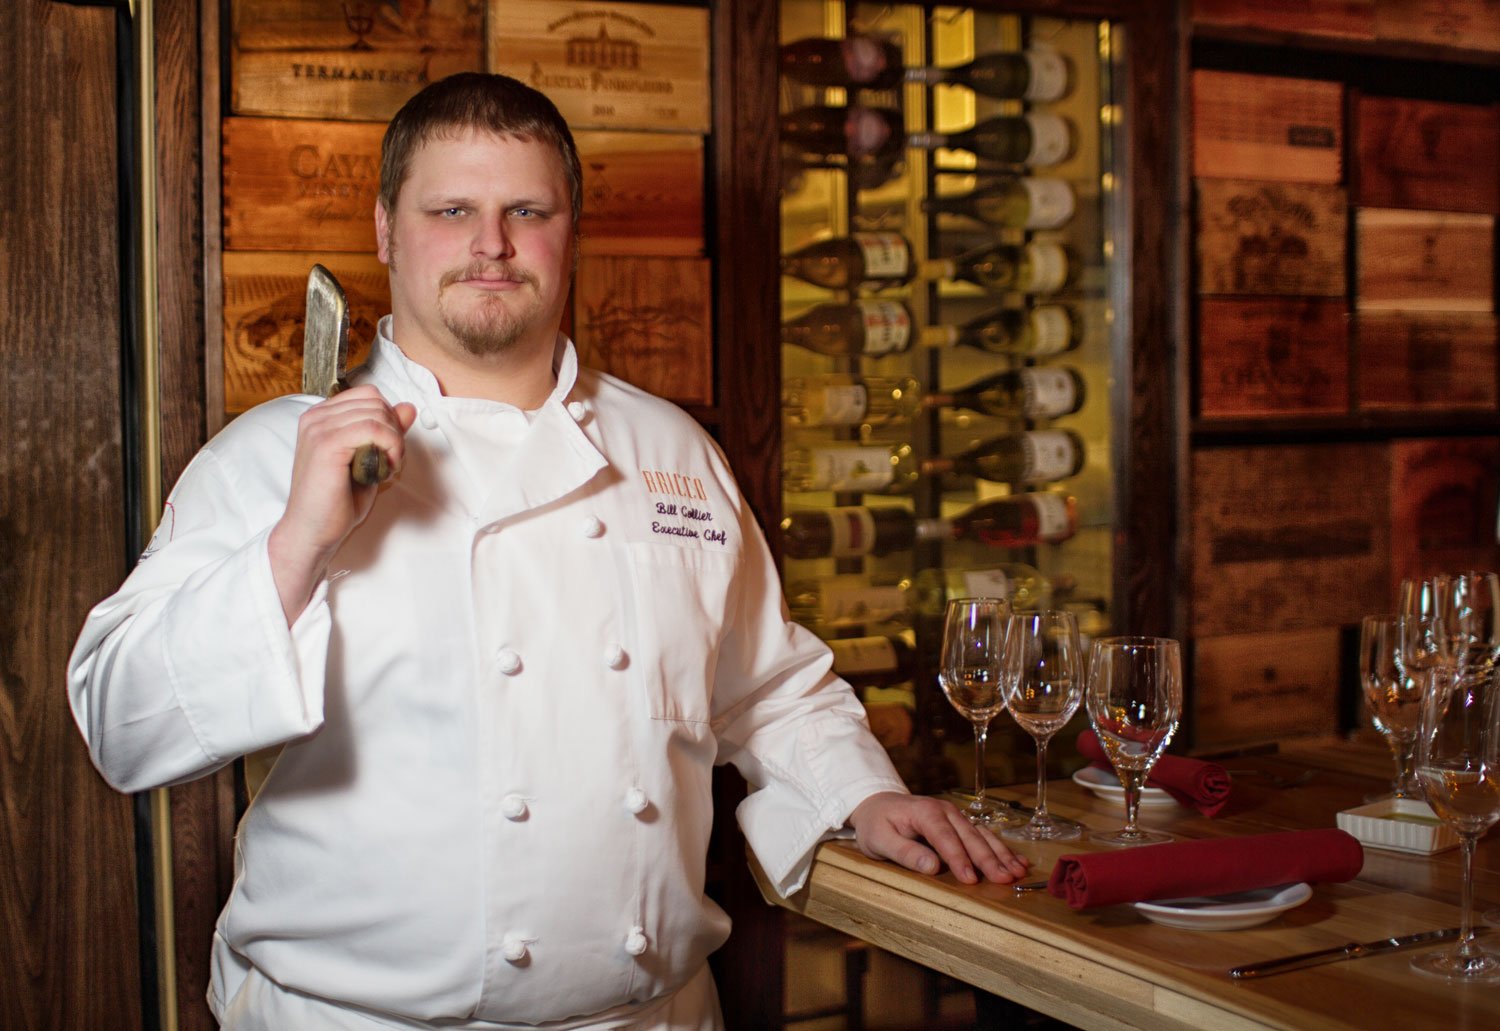 Bill Collier Executive Chef for Bricco/Table at Bricco